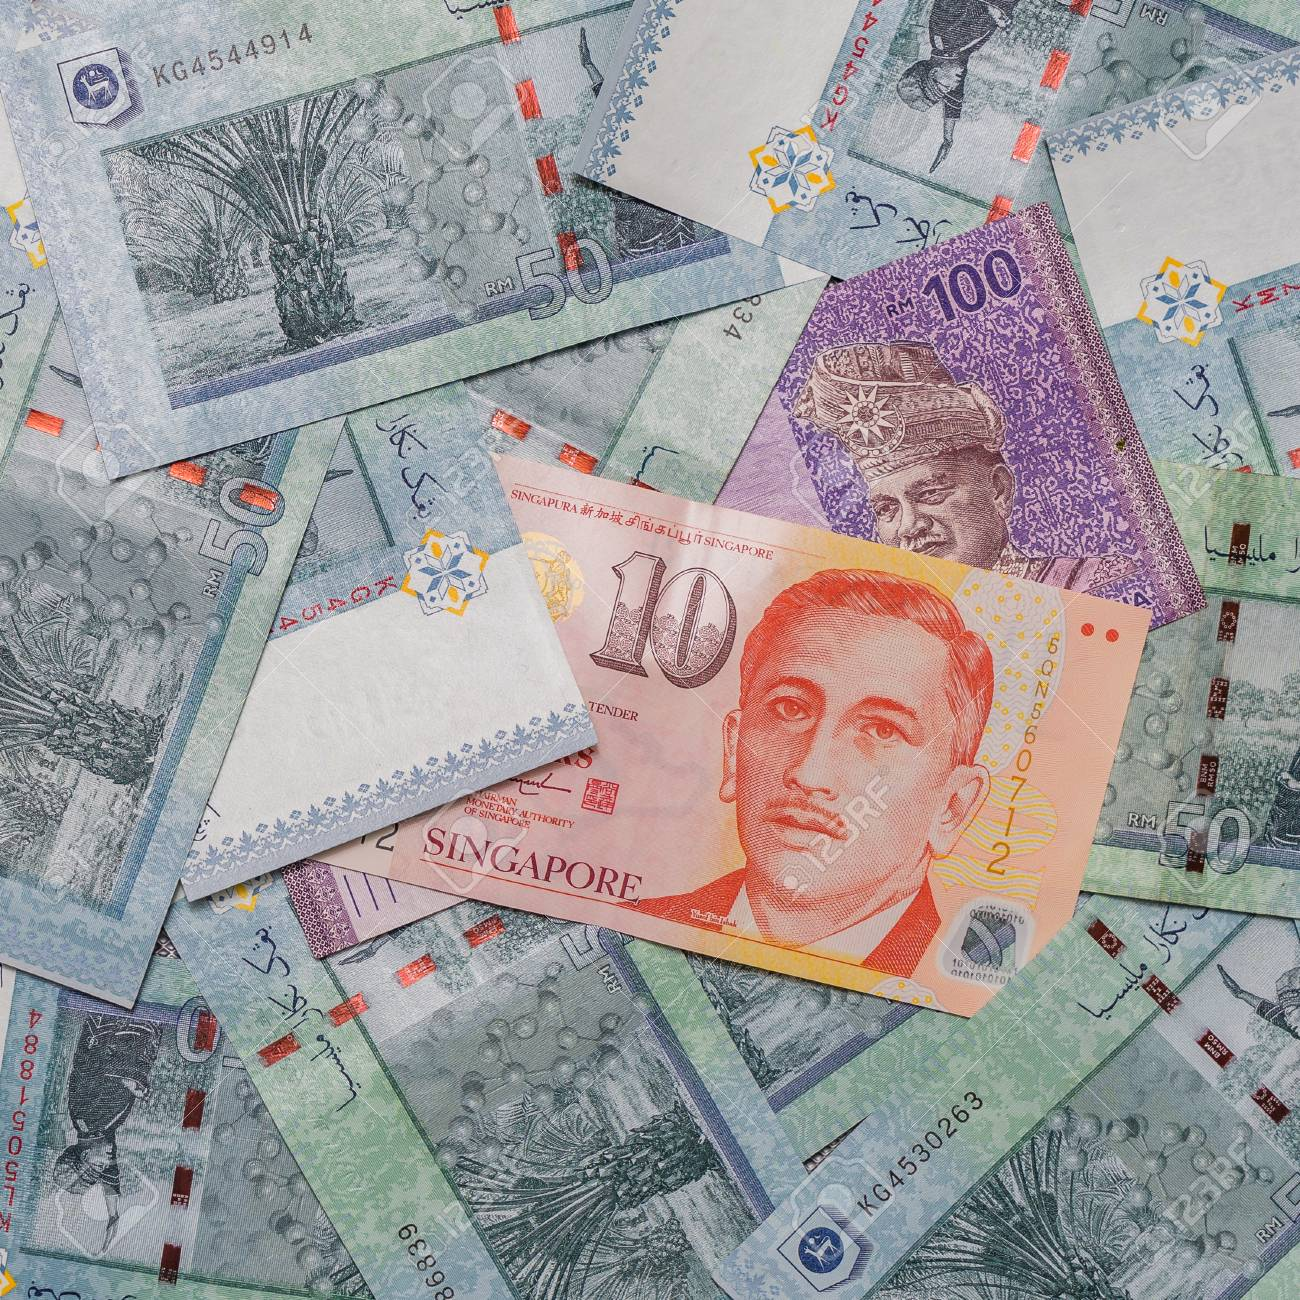 Singapore dollar on top of malaysian ringgit currency on pattern singapore dollar on top of malaysian ringgit currency on pattern background symbol rm currency code buycottarizona Image collections